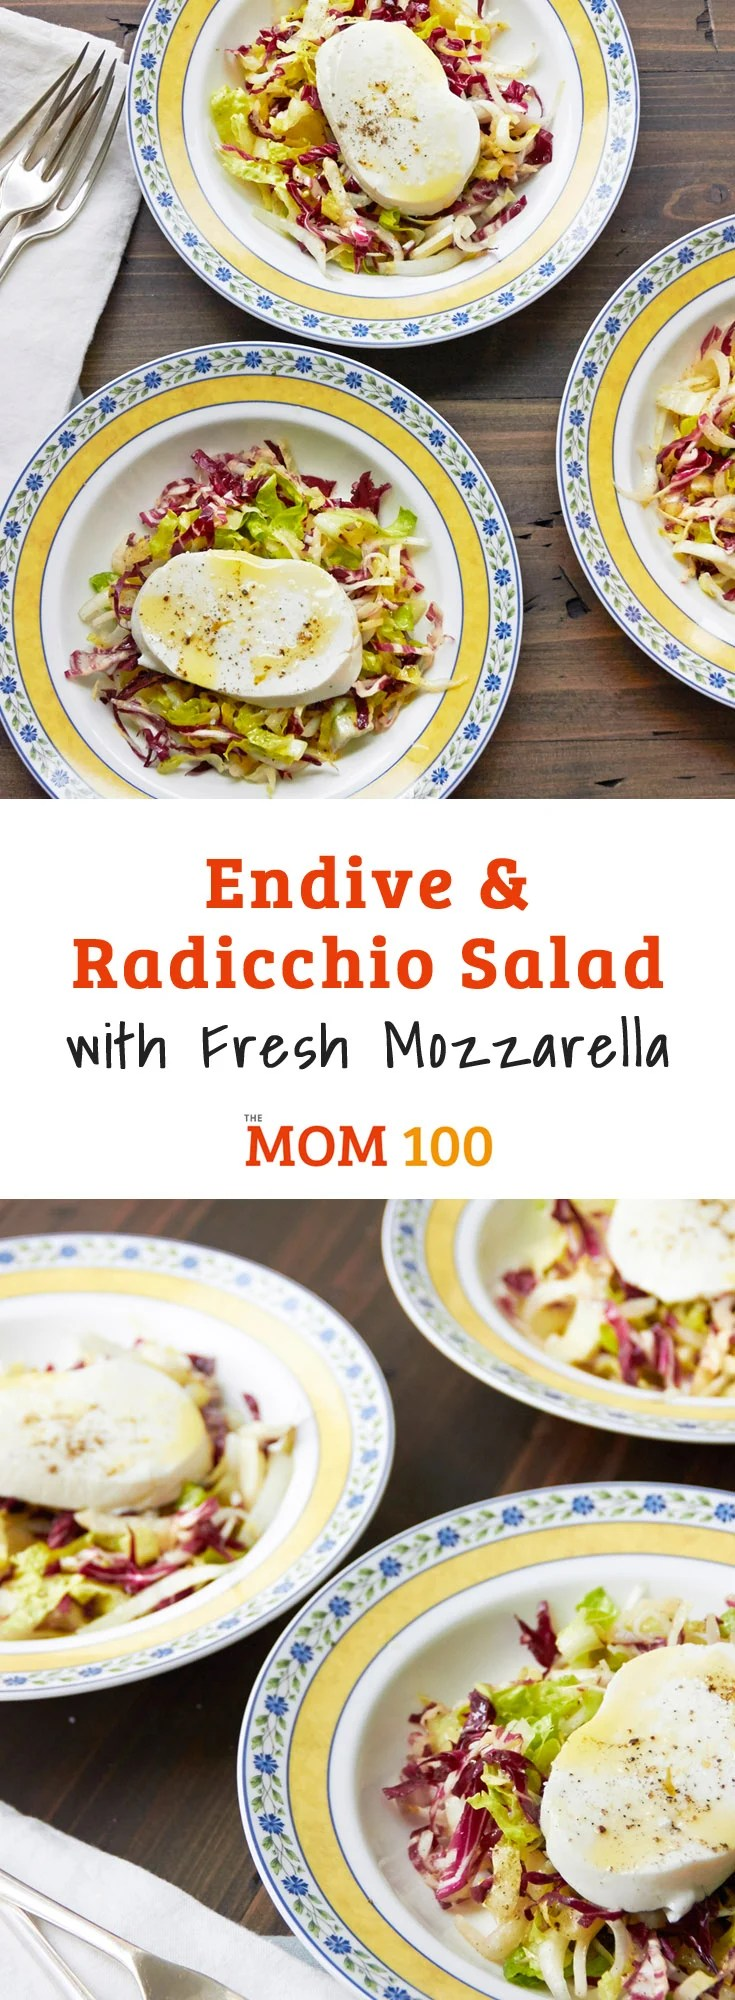 Endive and Radicchio Salad with Fresh Mozzarella is a salad that doesn't fade into the background. Plus, it was a hit with my kids.